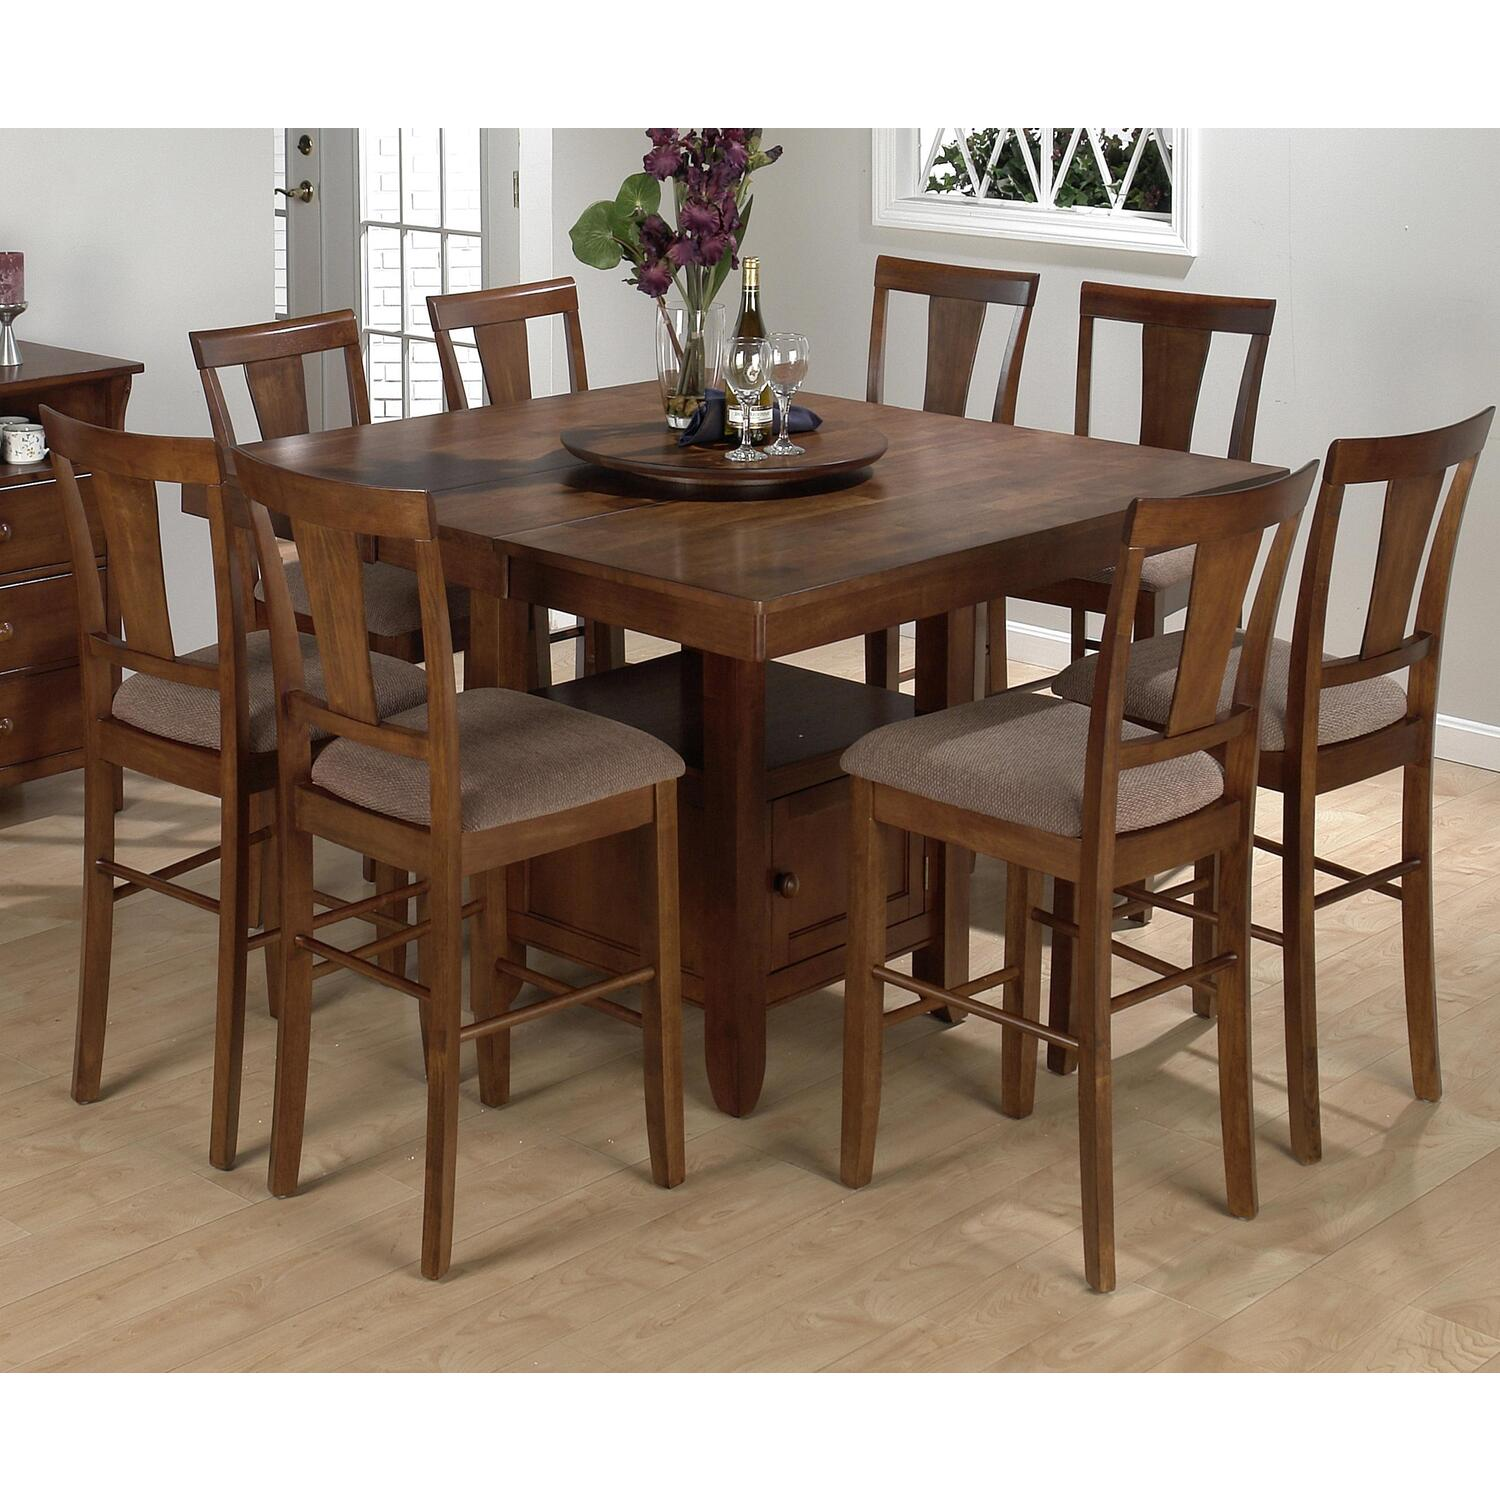 Saddle Brown Oak Finished Square Counter Height 9 Piece